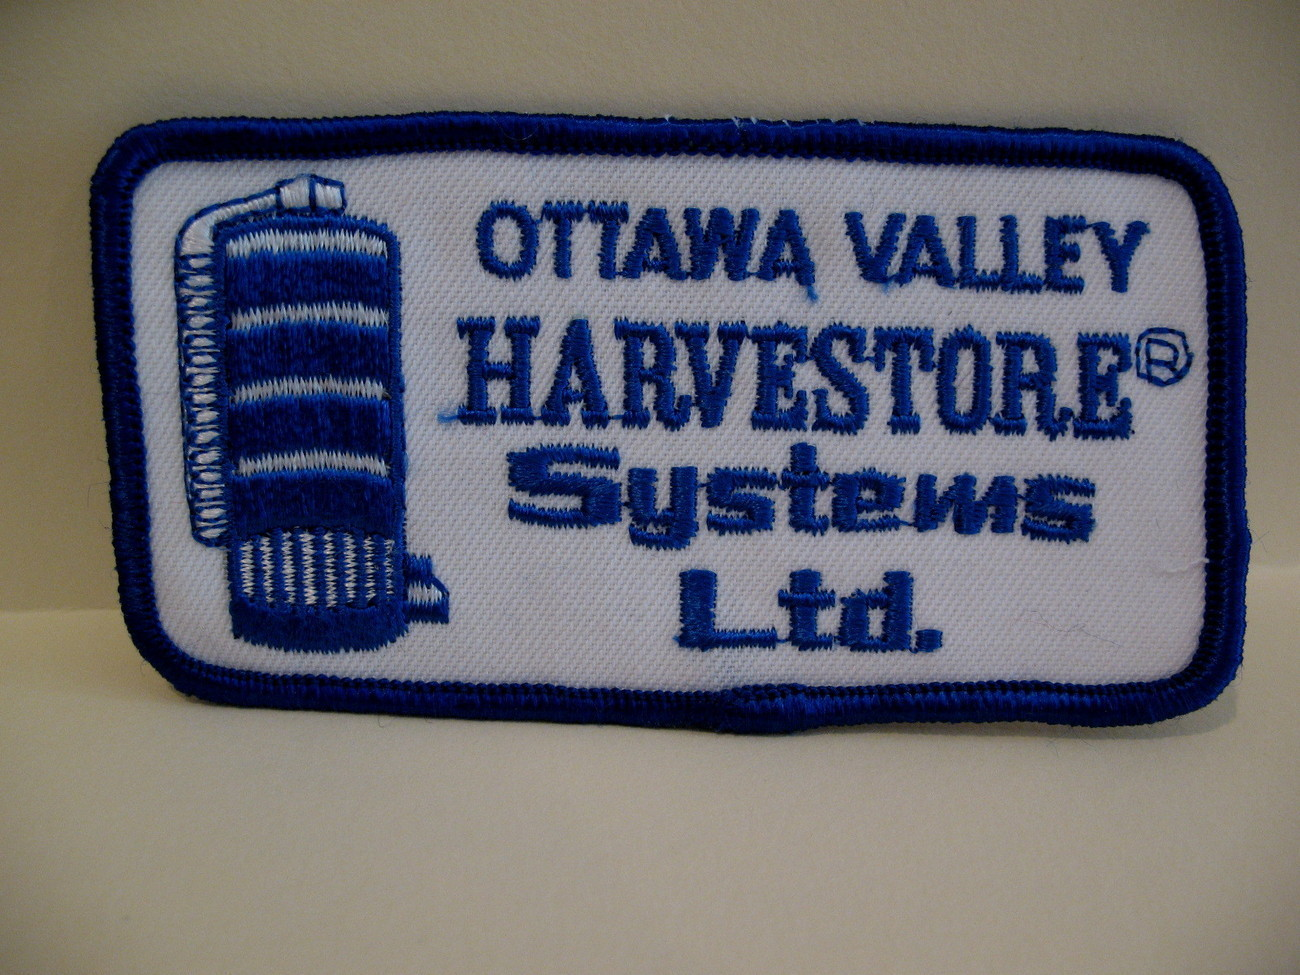 Primary image for Ottawa Valley Harvestore Systems Ltd. Souvenir Patch Crest